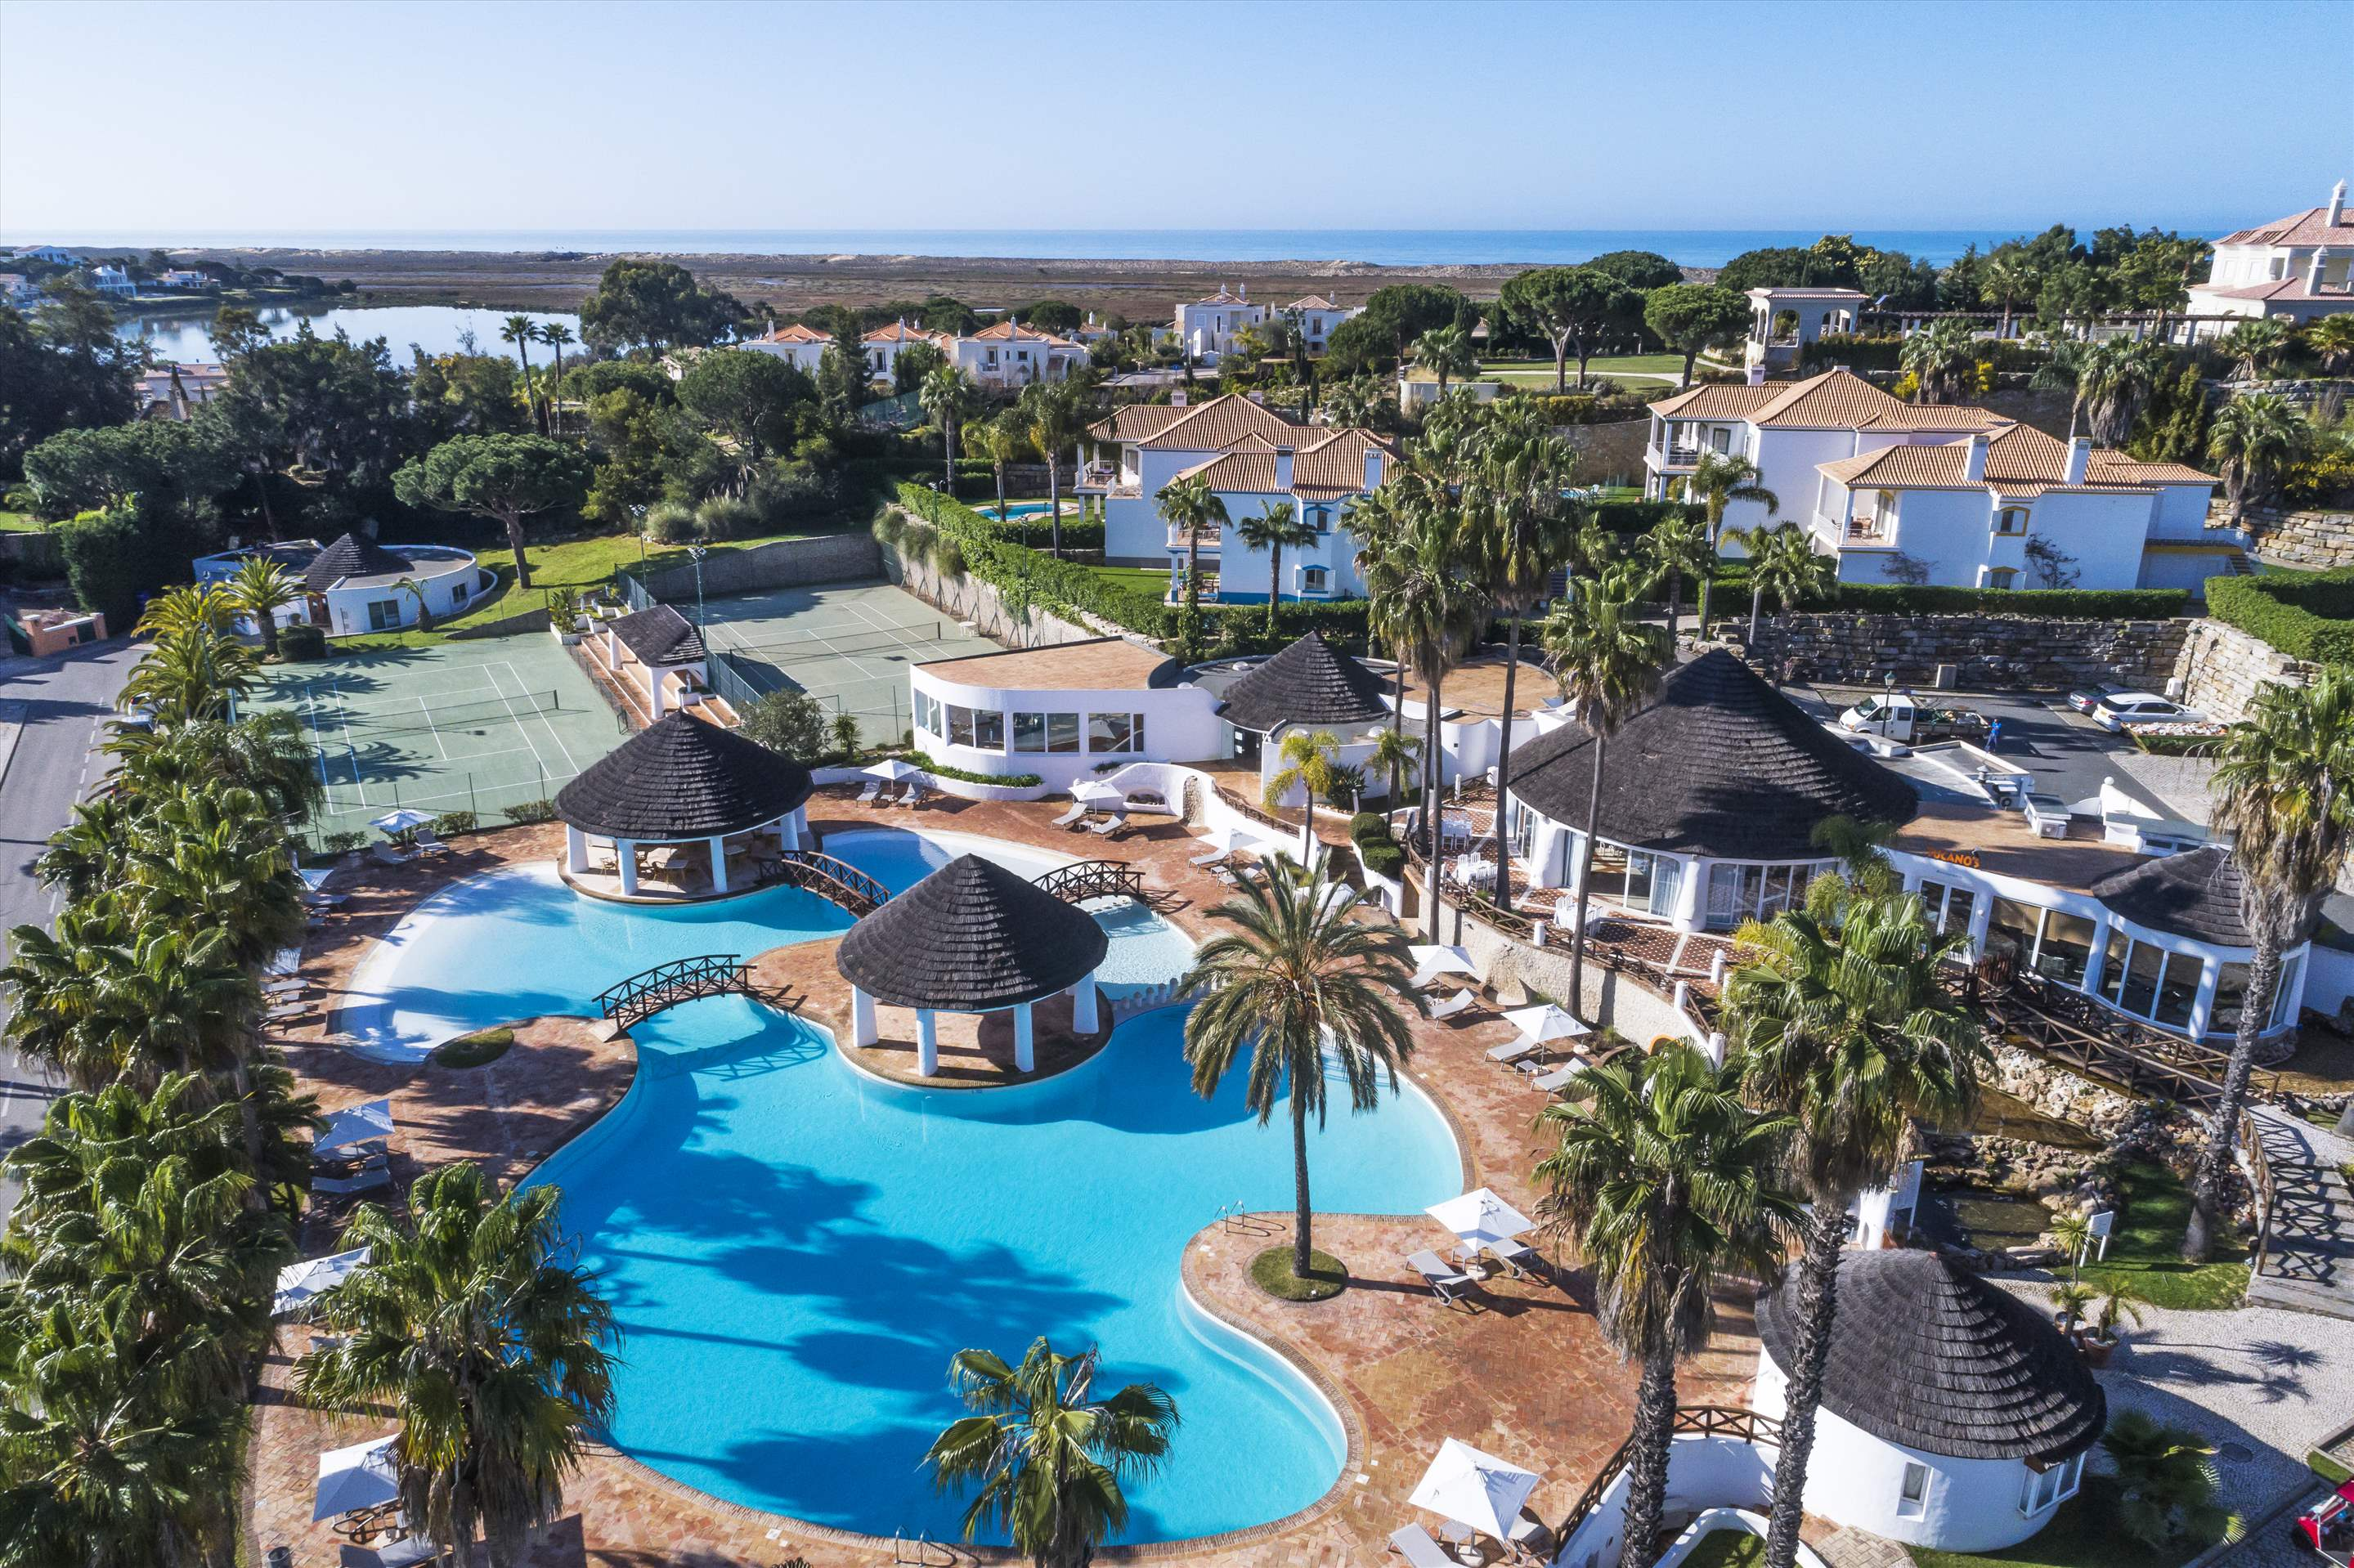 Encosta do Lago 1 Bedroom Apt, Top Floor, 1 bedroom apartment in Encosta do Lago Resort, Algarve Photo #24